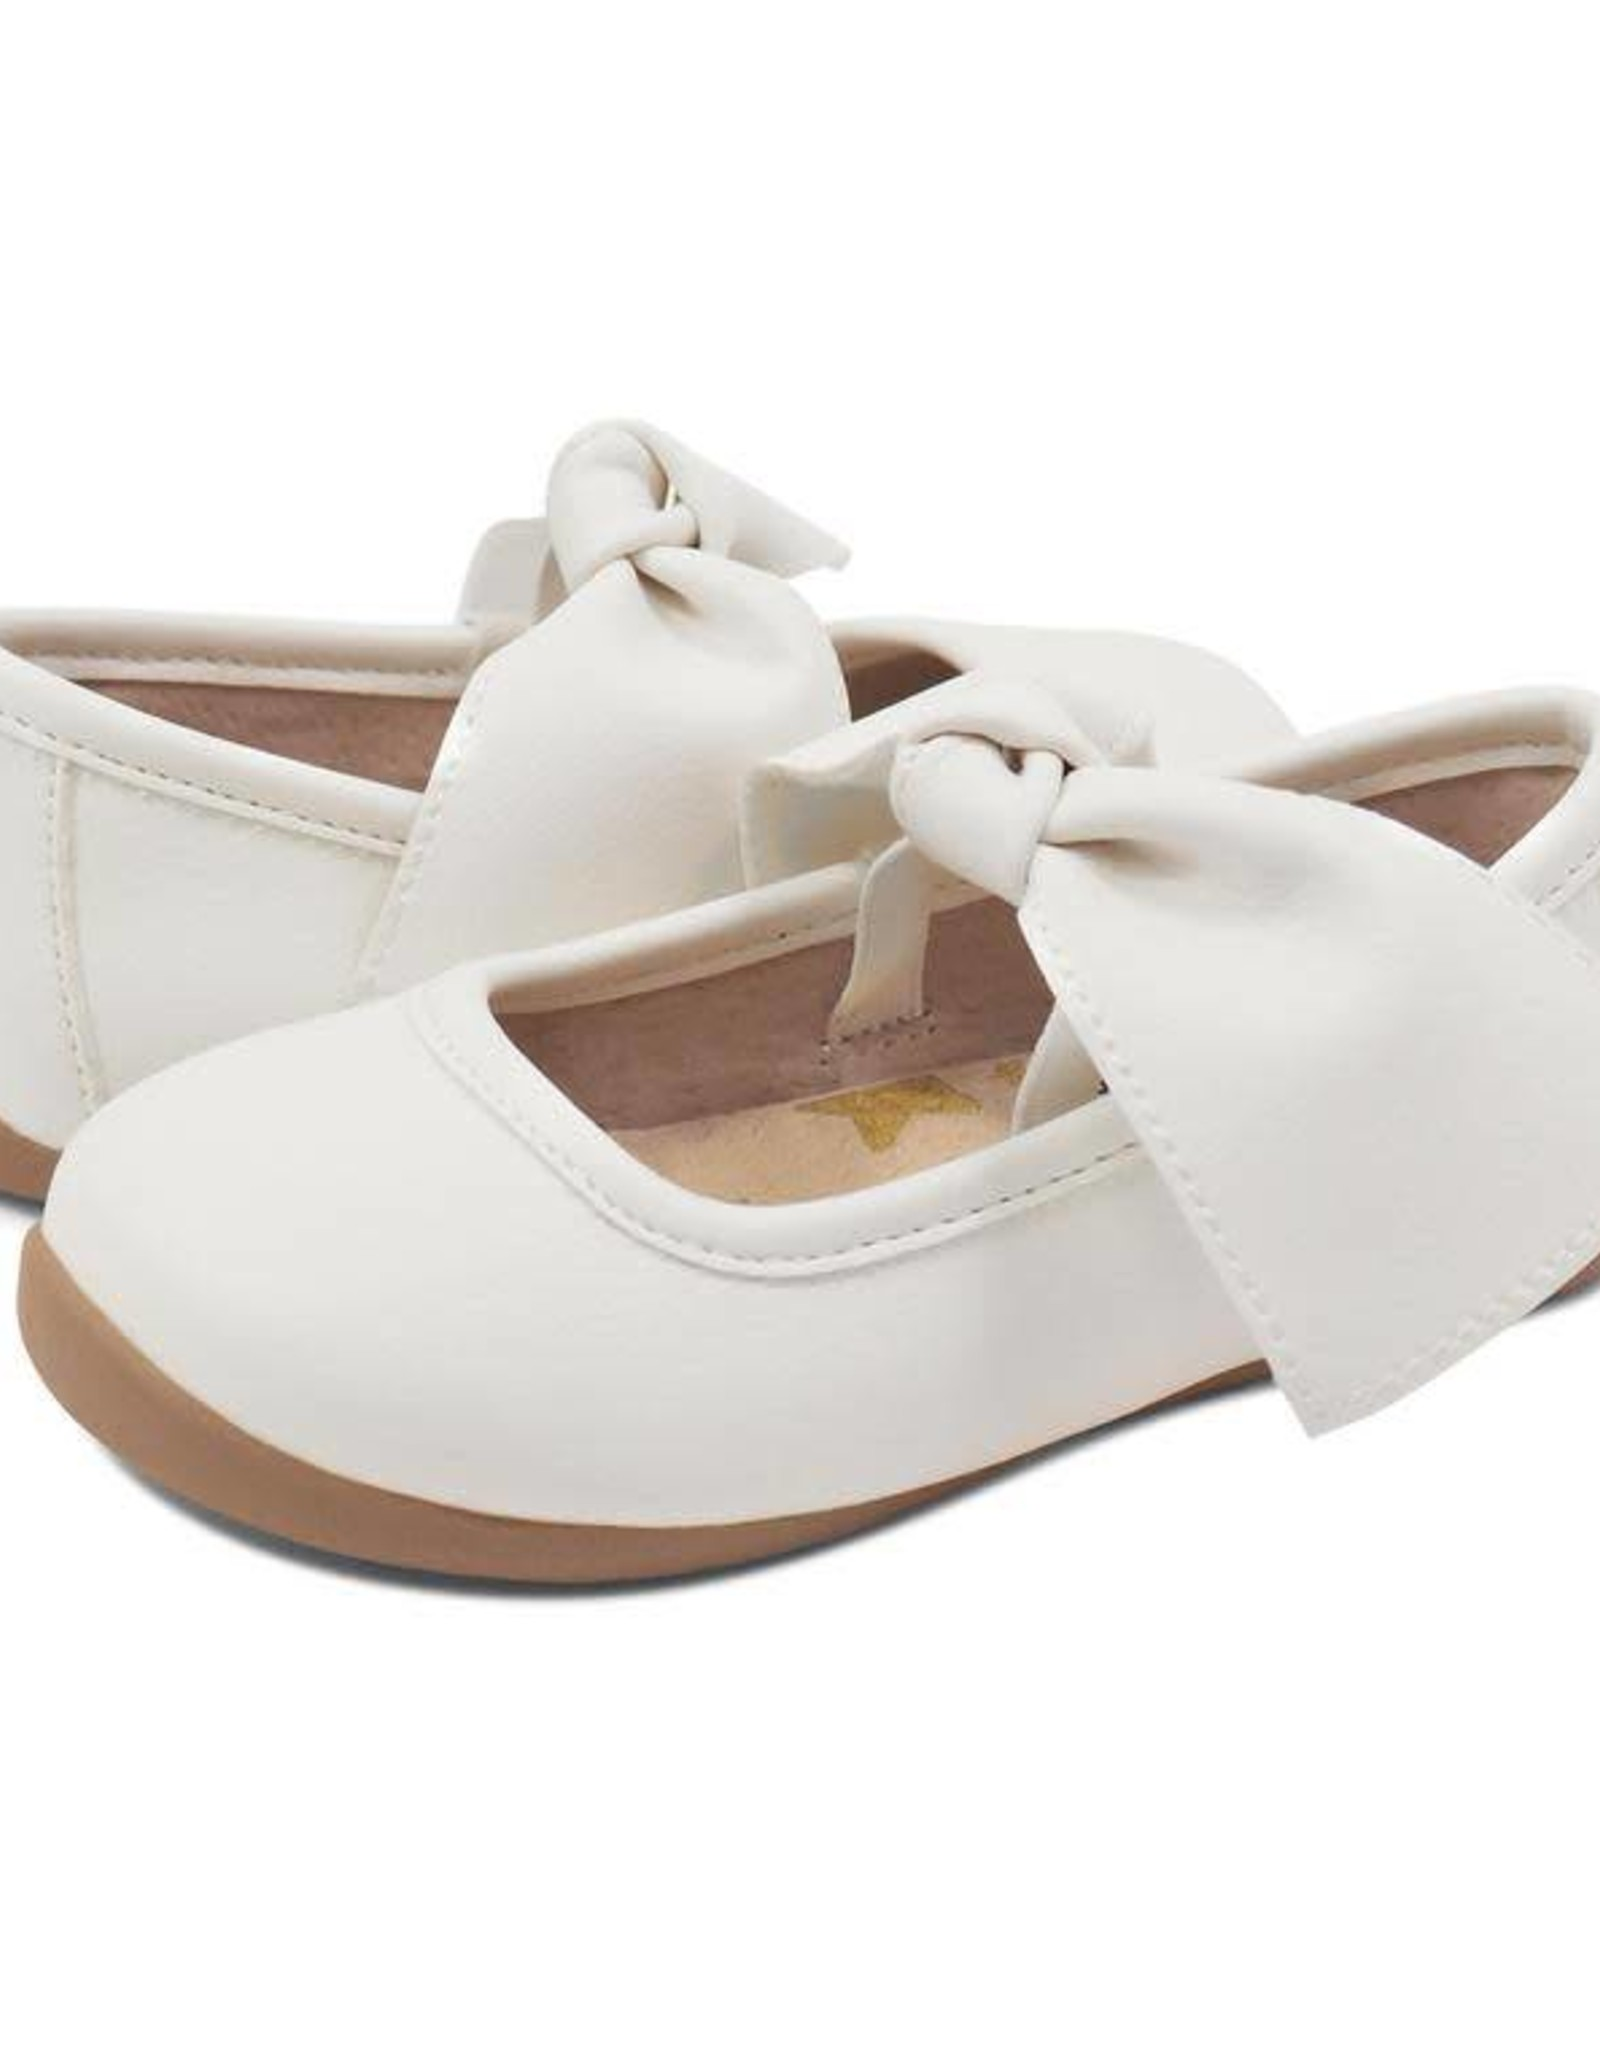 Livie and Luca Halley Ballet Flat in Bright White